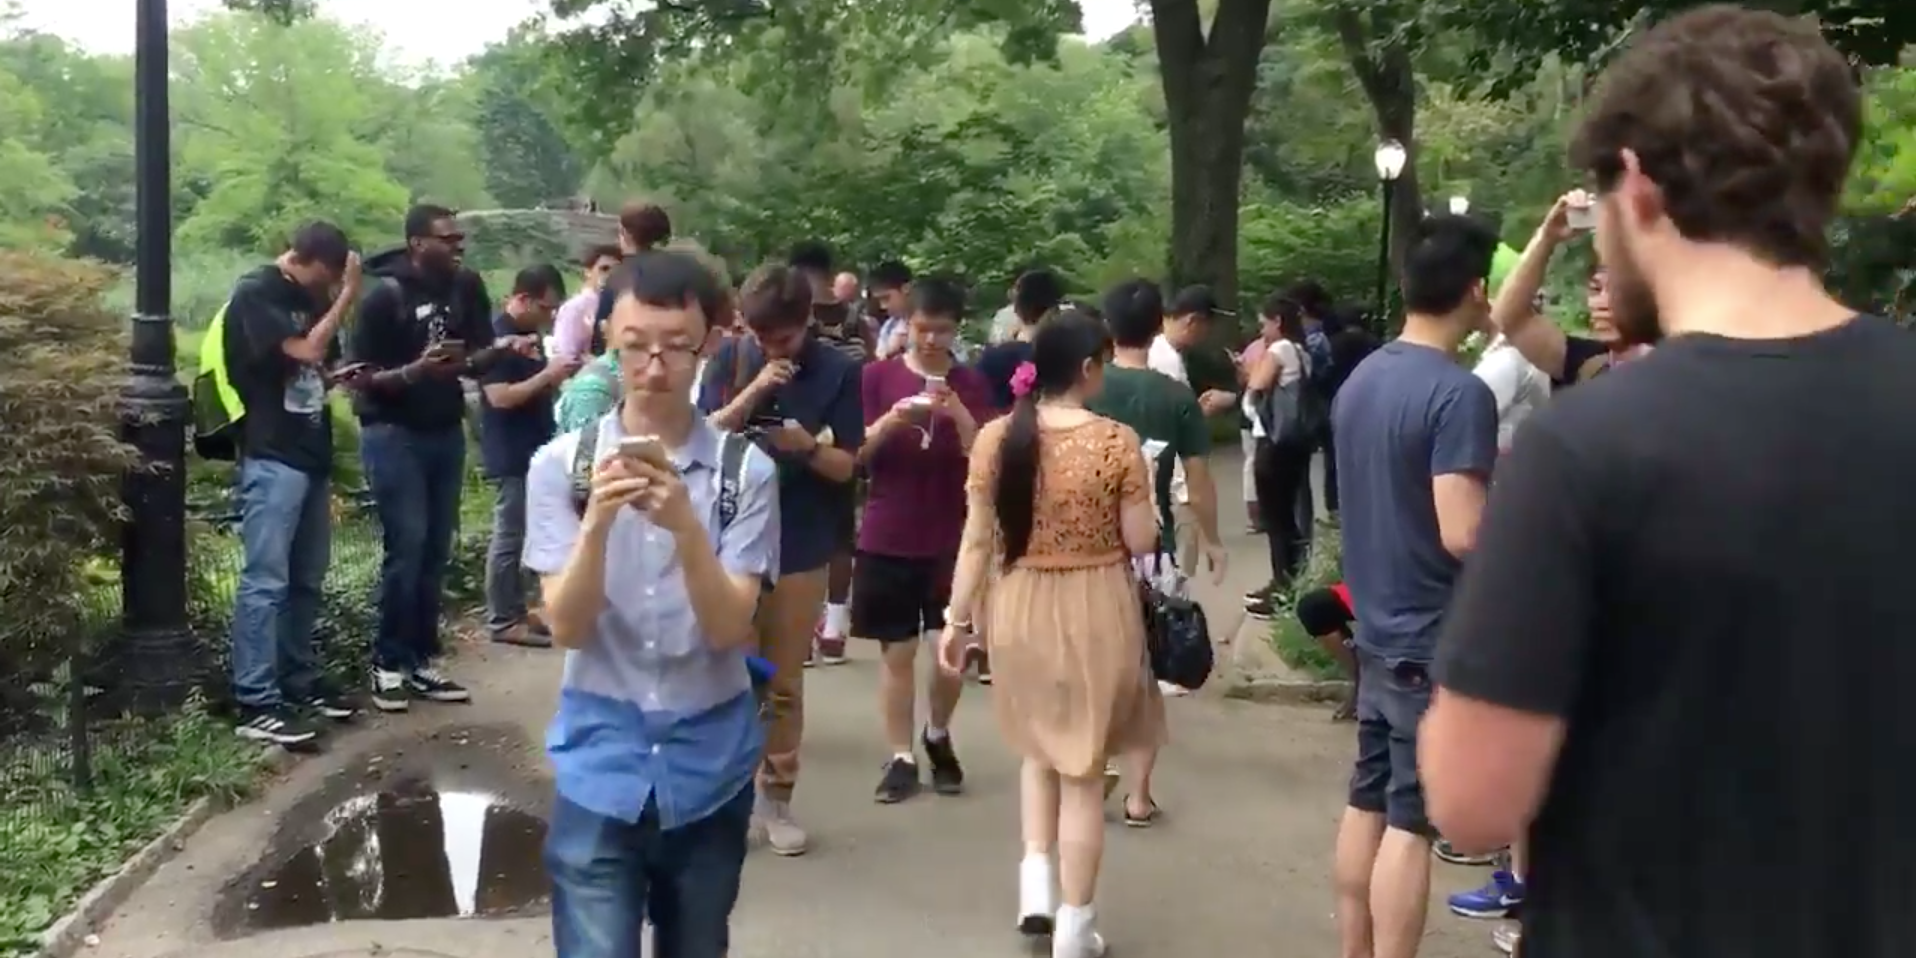 A massive crowd gathers in New York City's Central Park to catch 'em all.